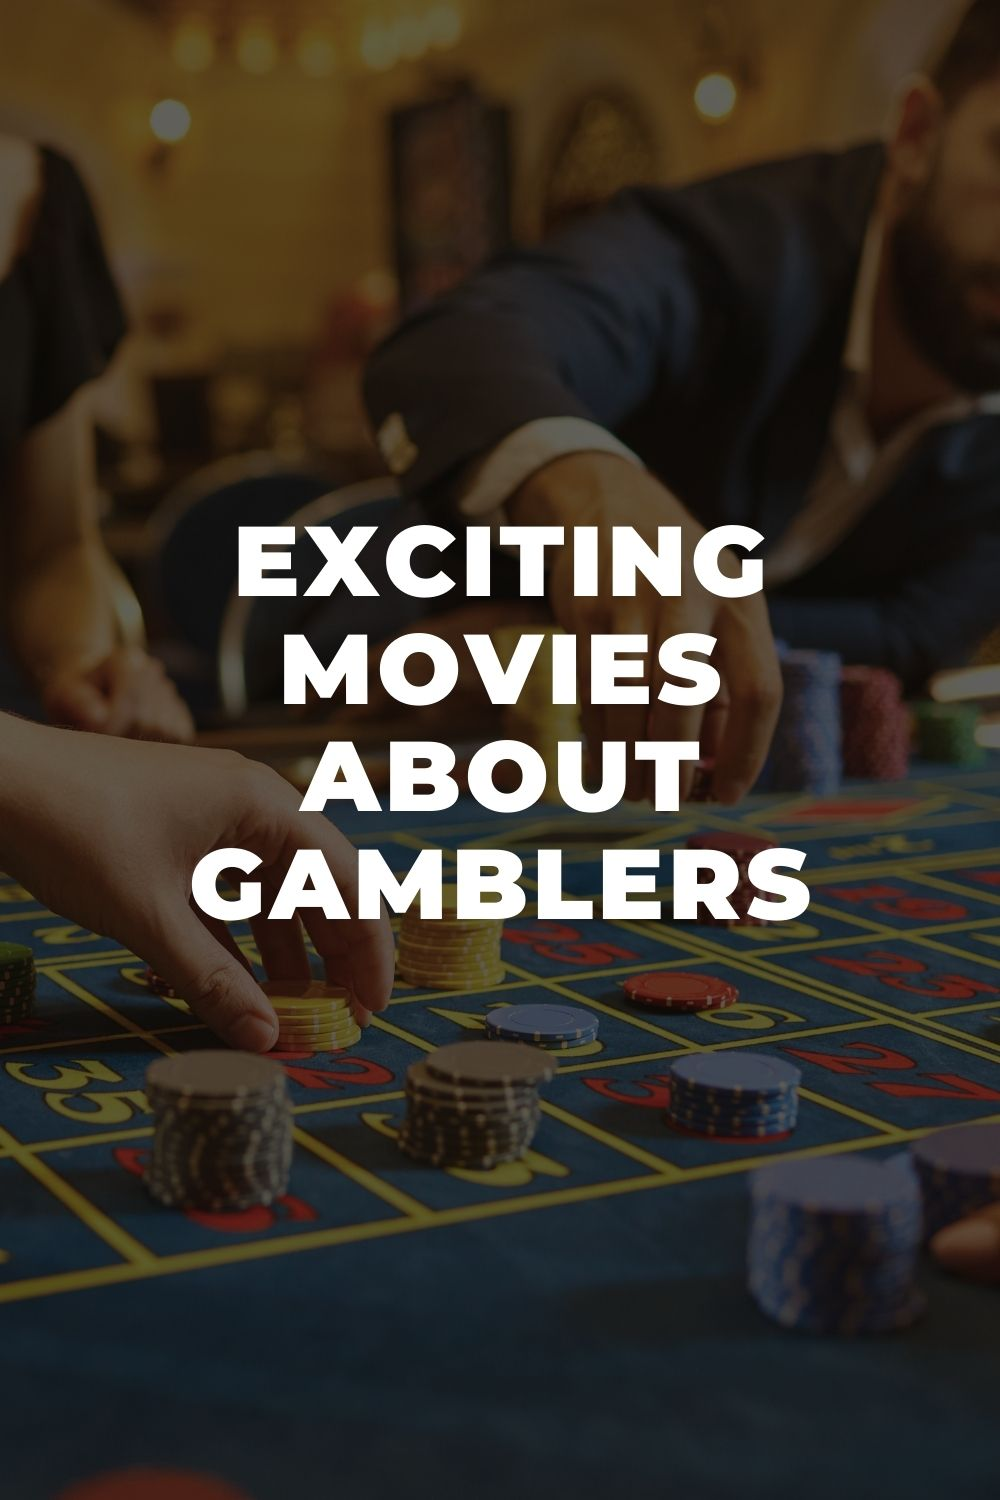 Exciting Movies About Gamblers